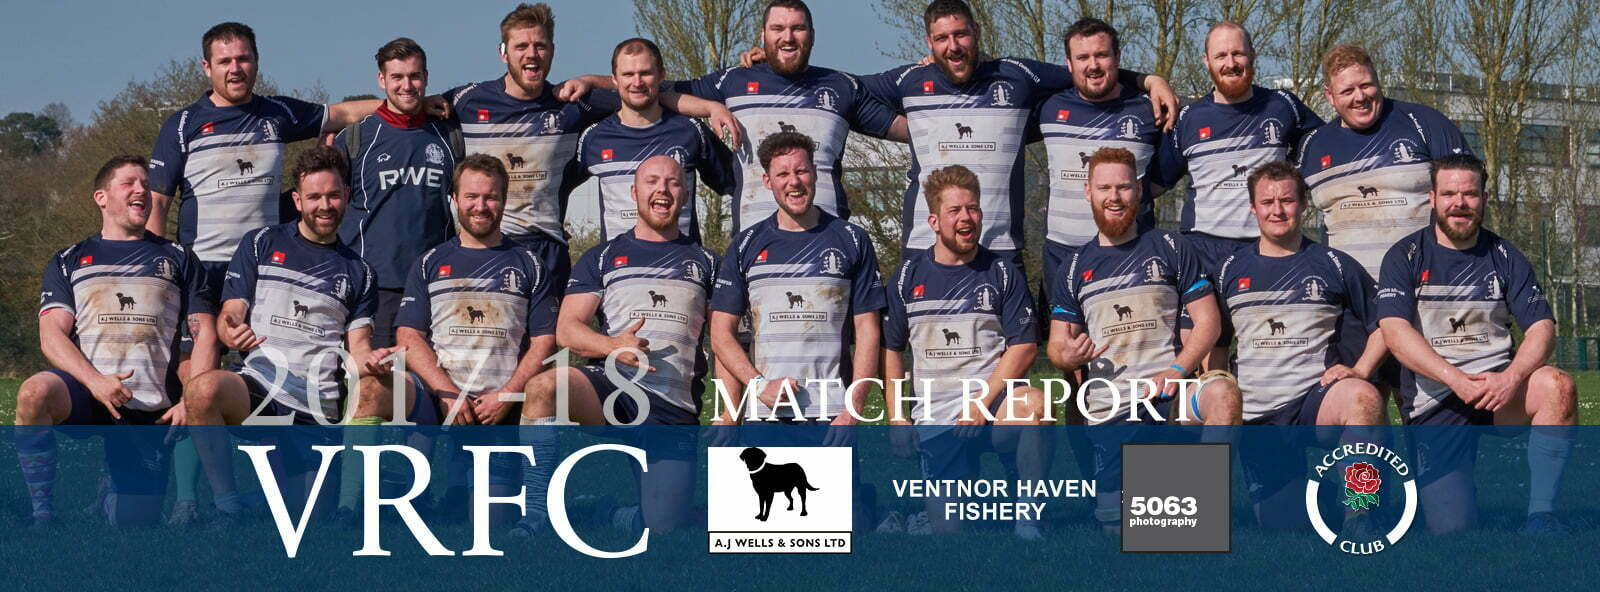 match-report-millbrook-rfc-1xv-ventnor-rfc-1xv-14042018-1600-wide-x-315